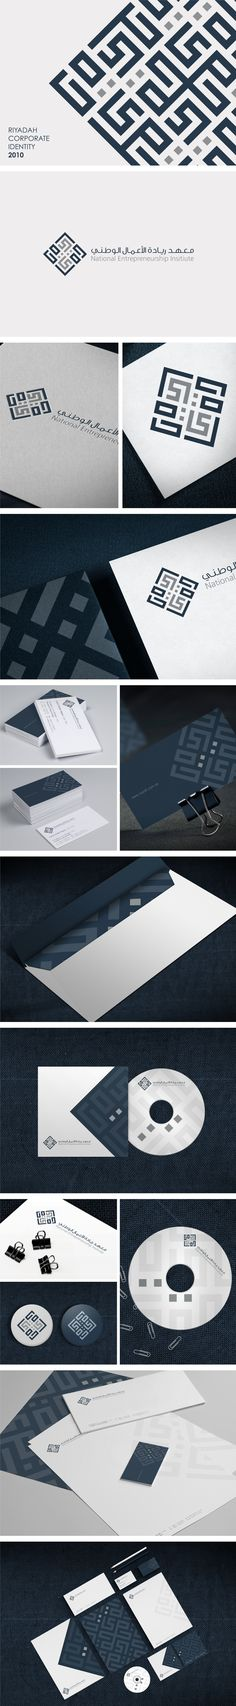 283 best stationery suites and folders images on Pinterest - resume holders